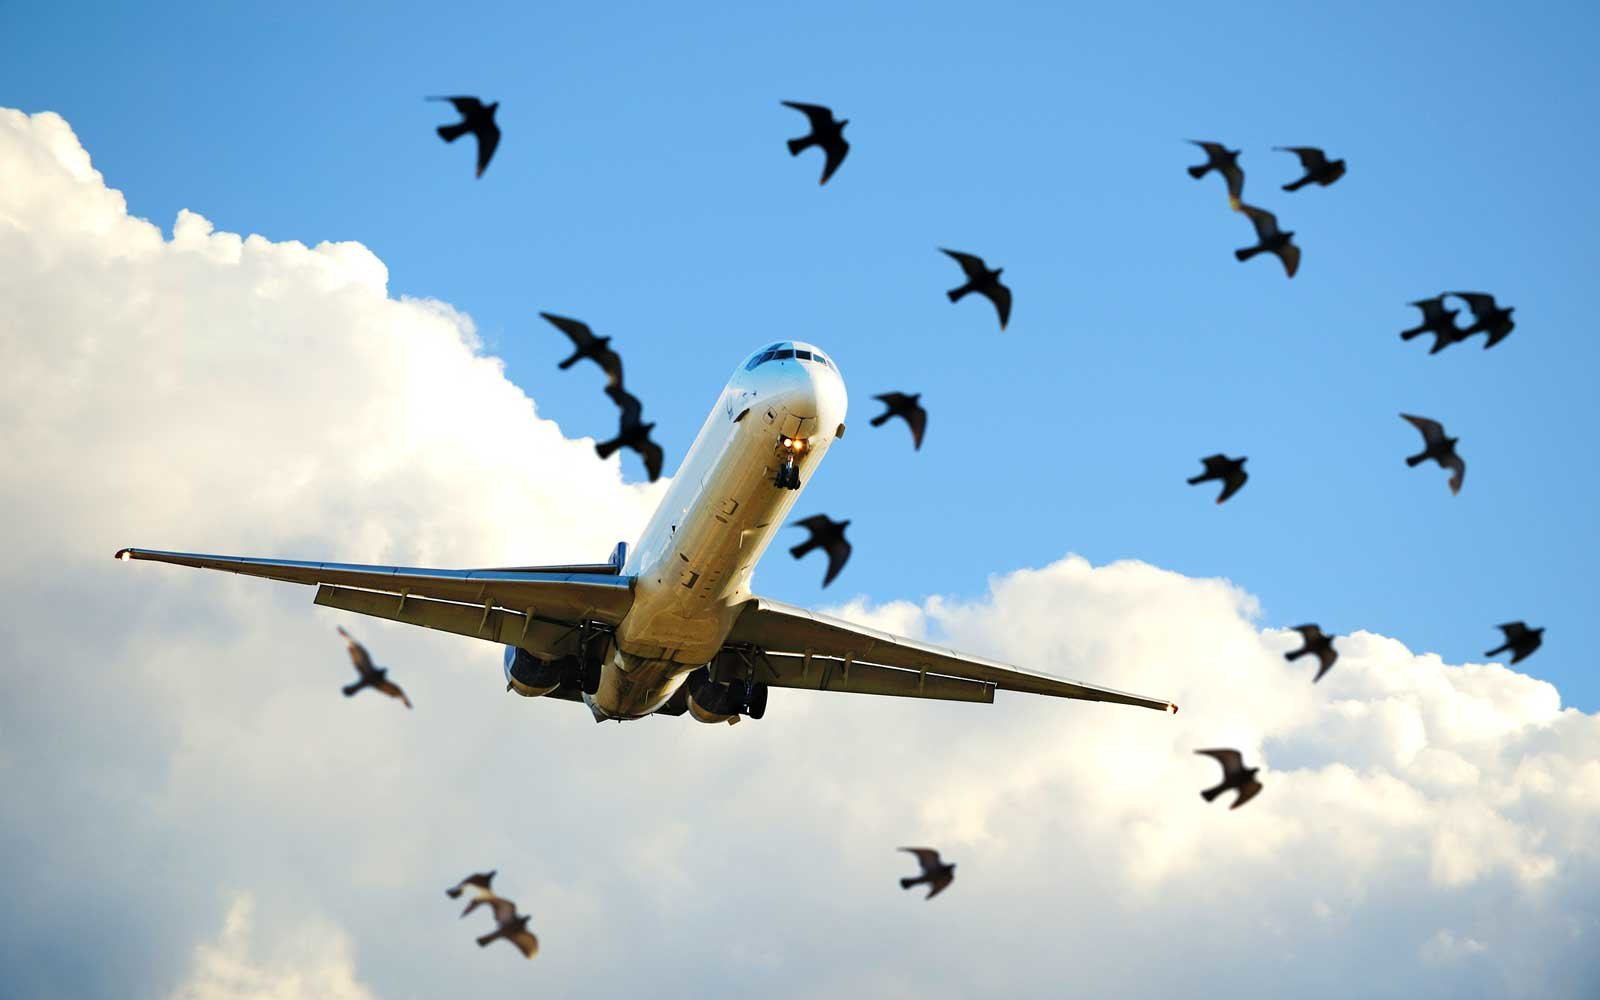 Plane Flying with Birds